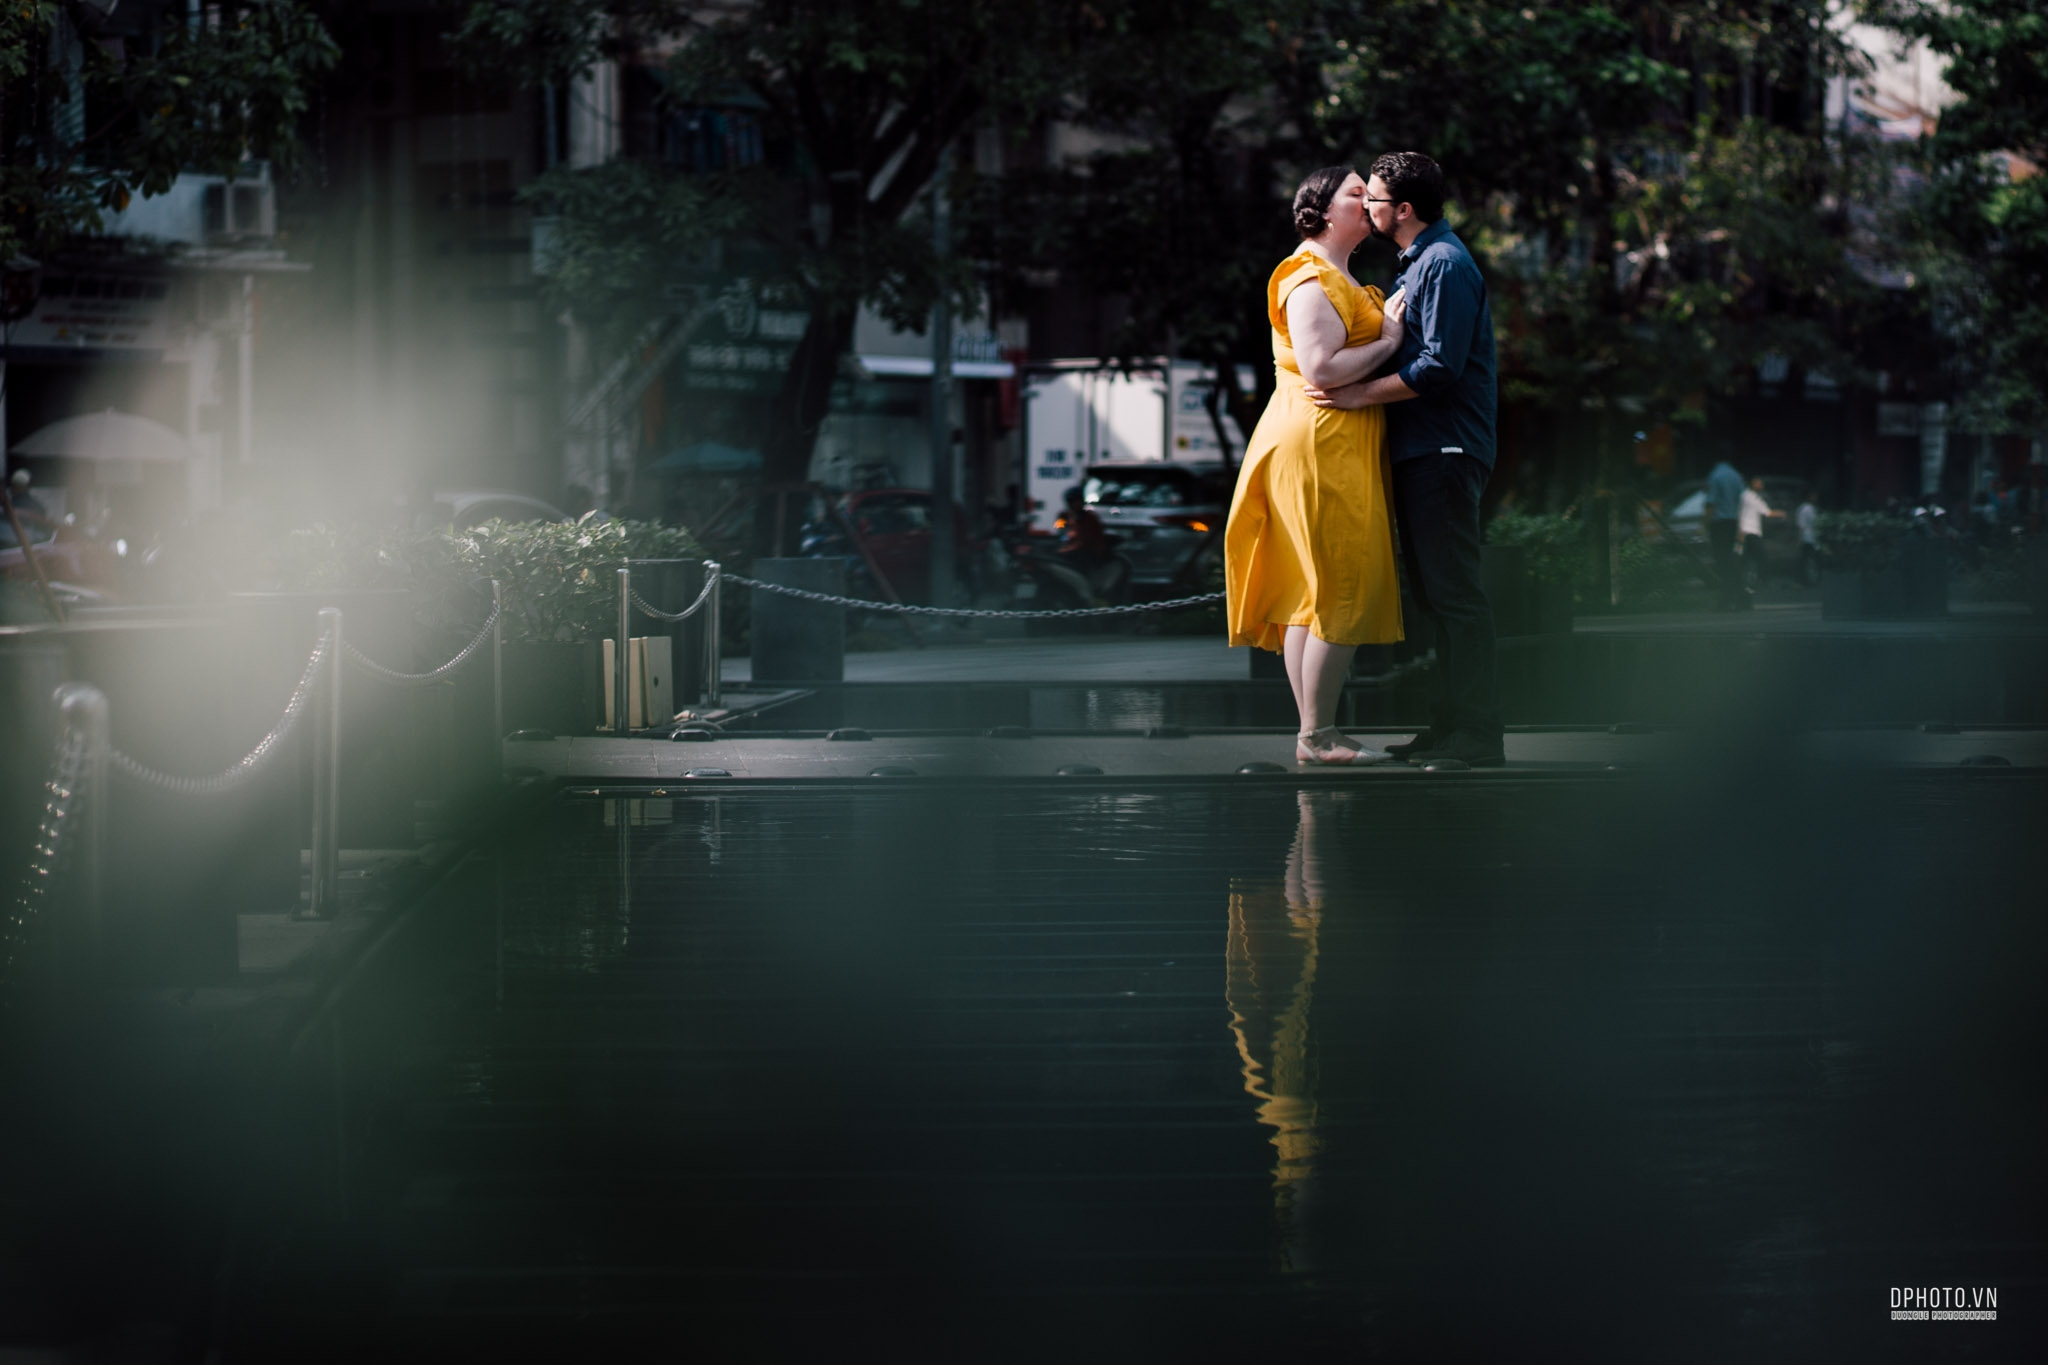 engagement_photo_in_sai_gon_ho_chi_minh_viet_nam9